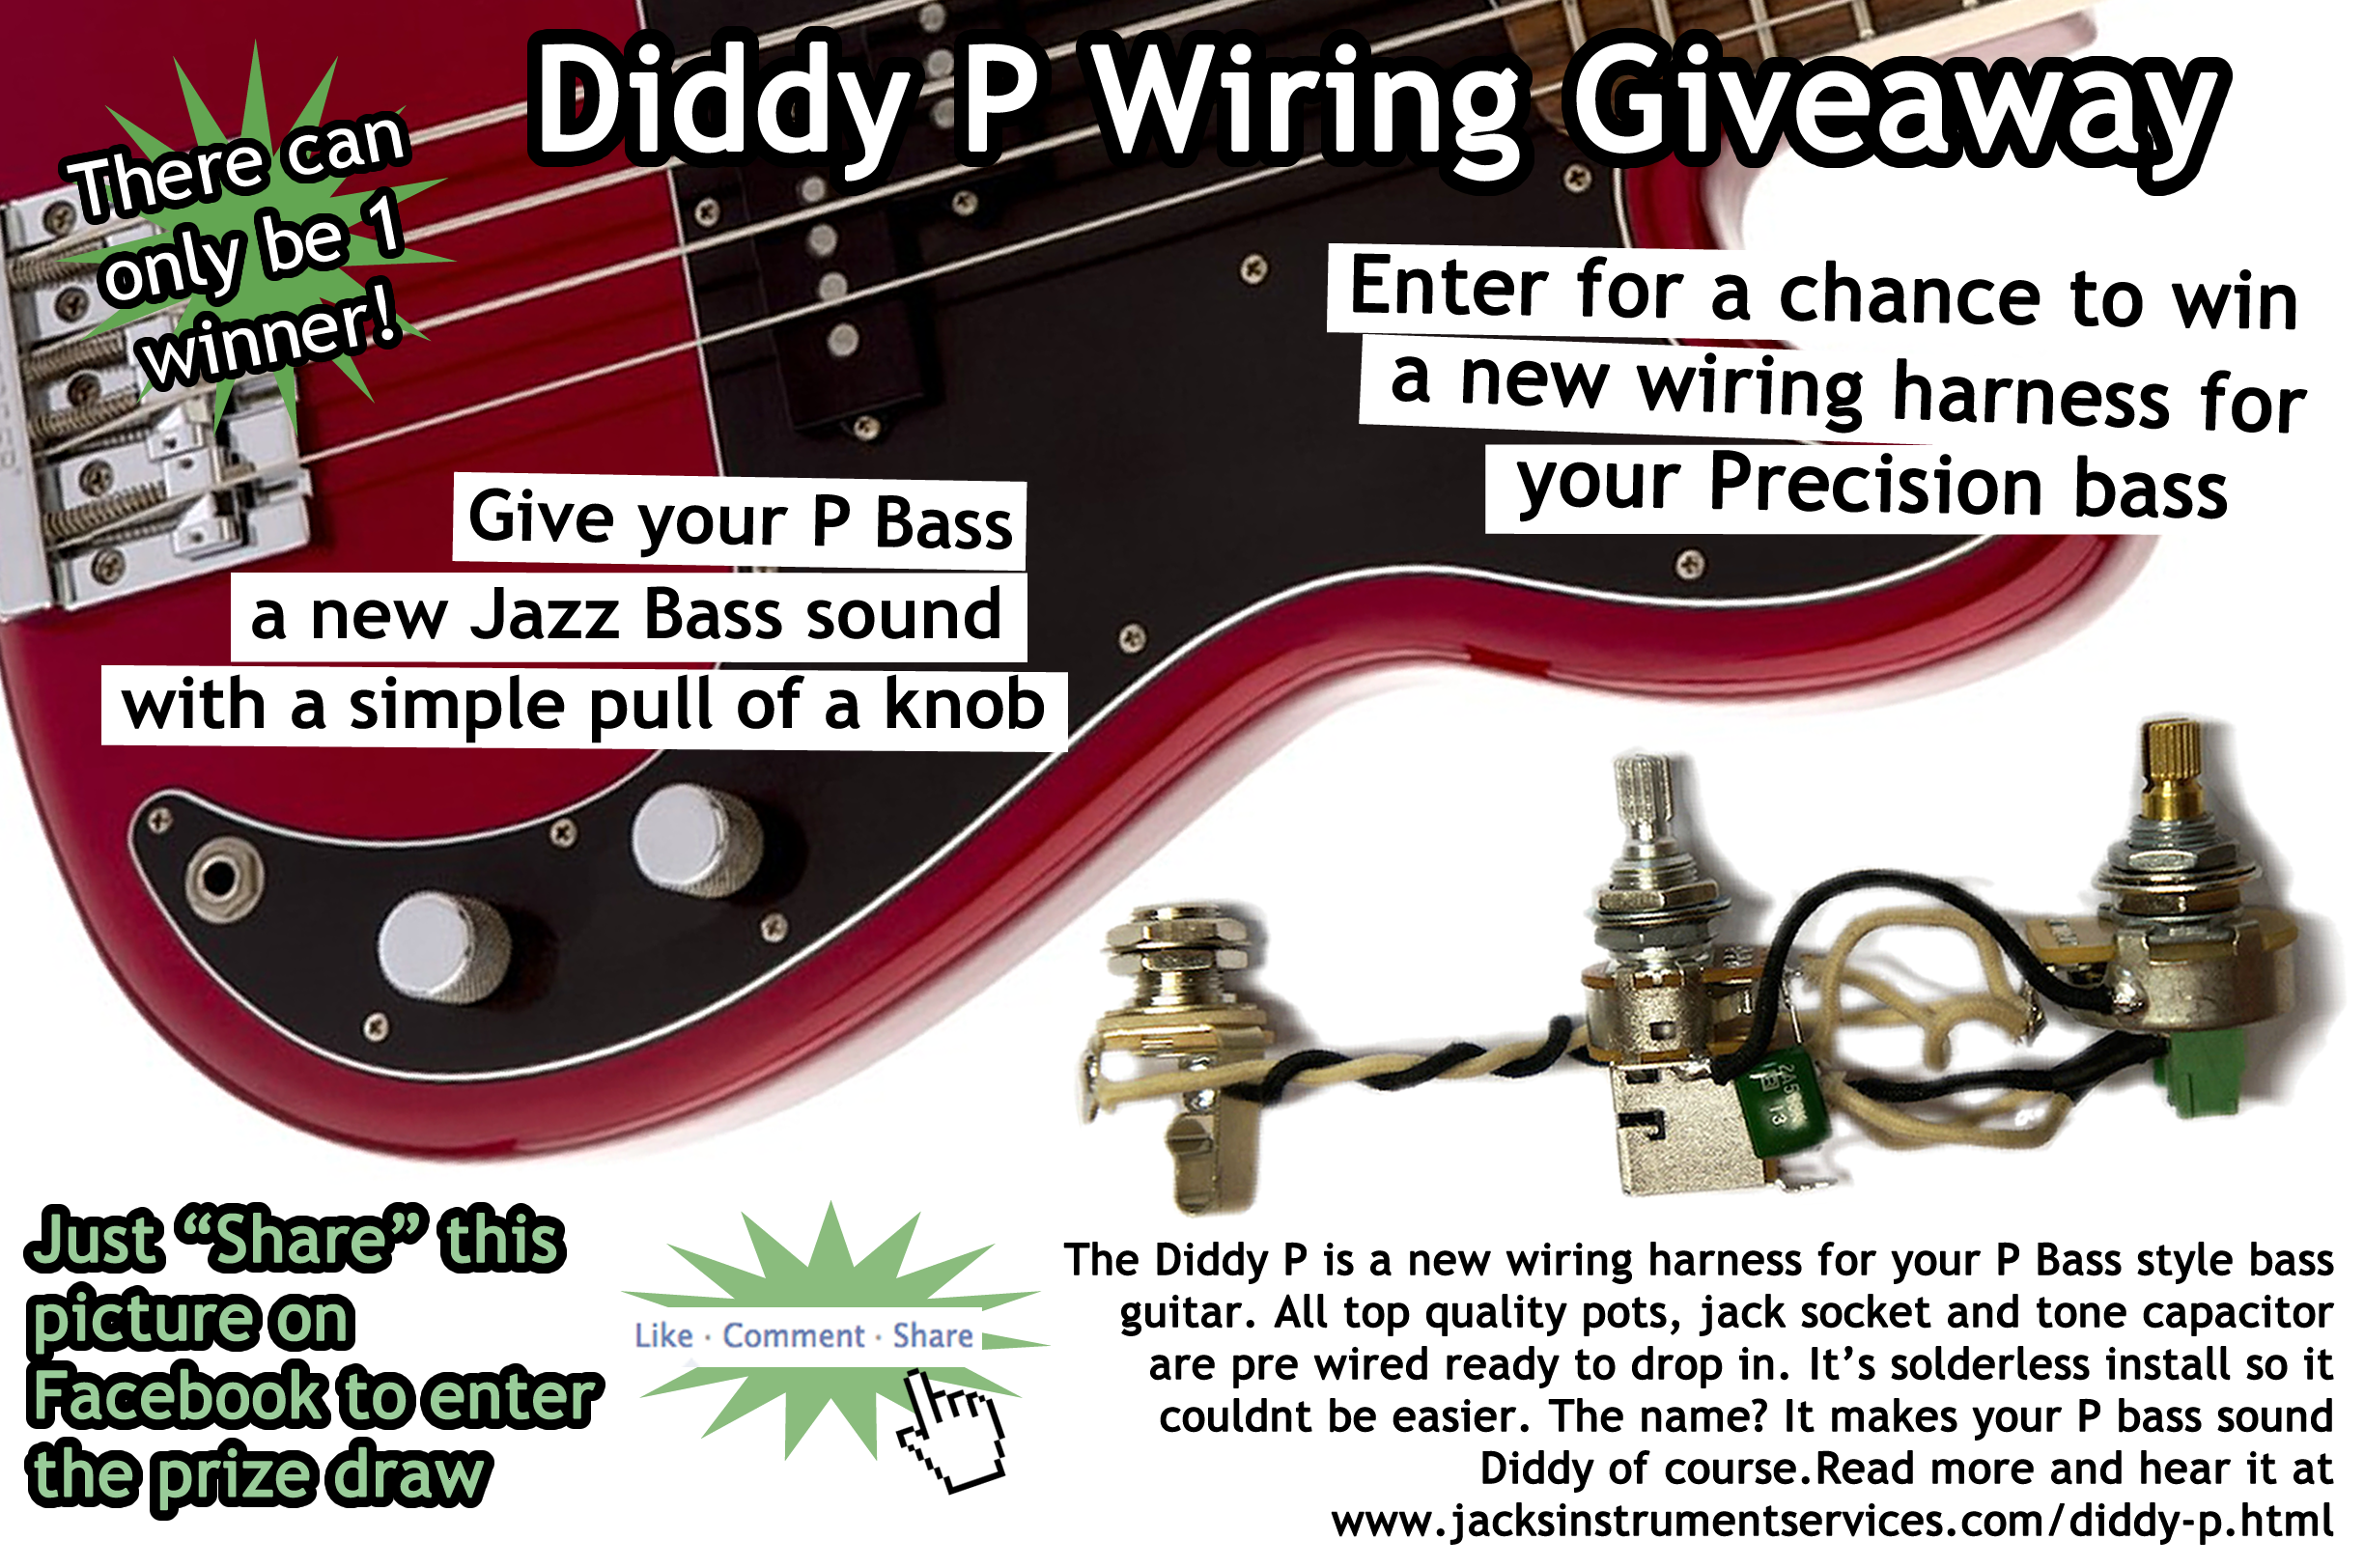 Win a Diddy P wiring harness for your P bass guitar! Share this picture on